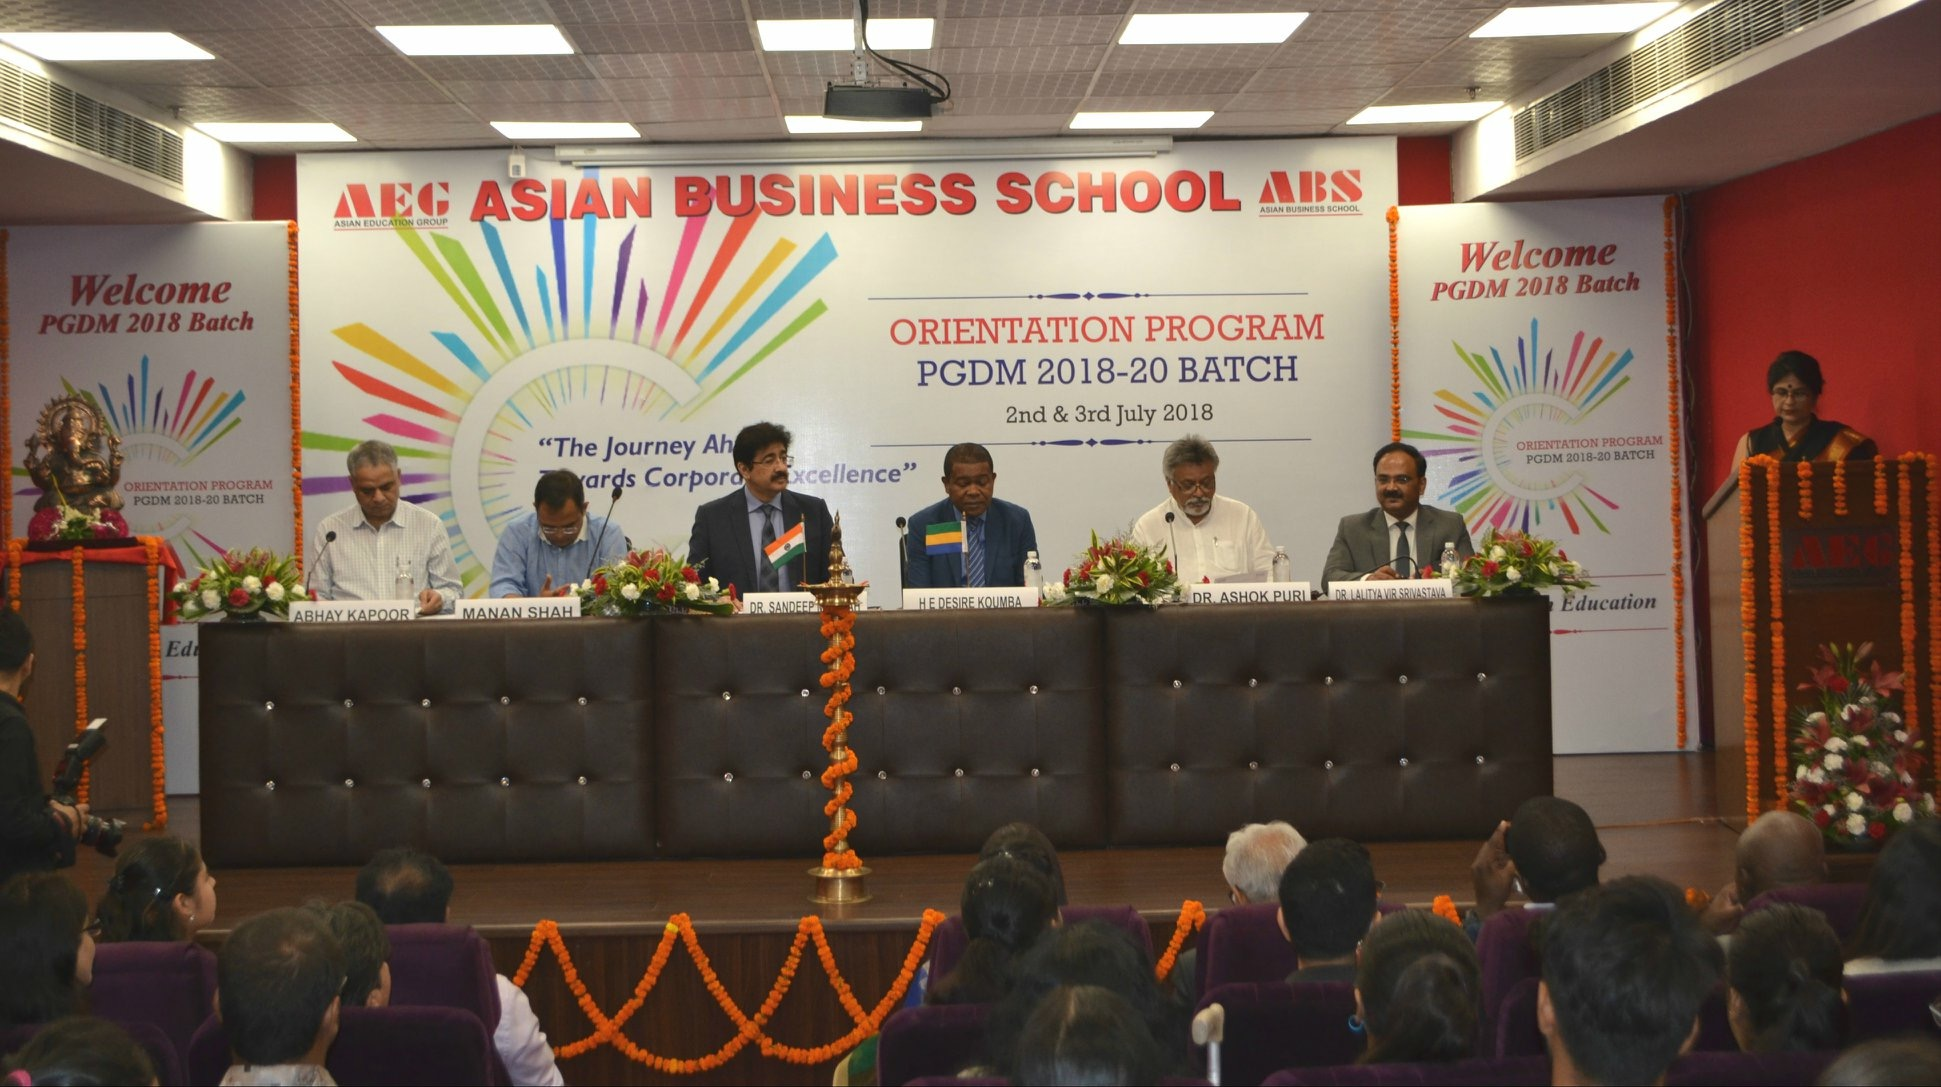 MBA/PGDM at ABS - Asian Business School - Placements, Fees